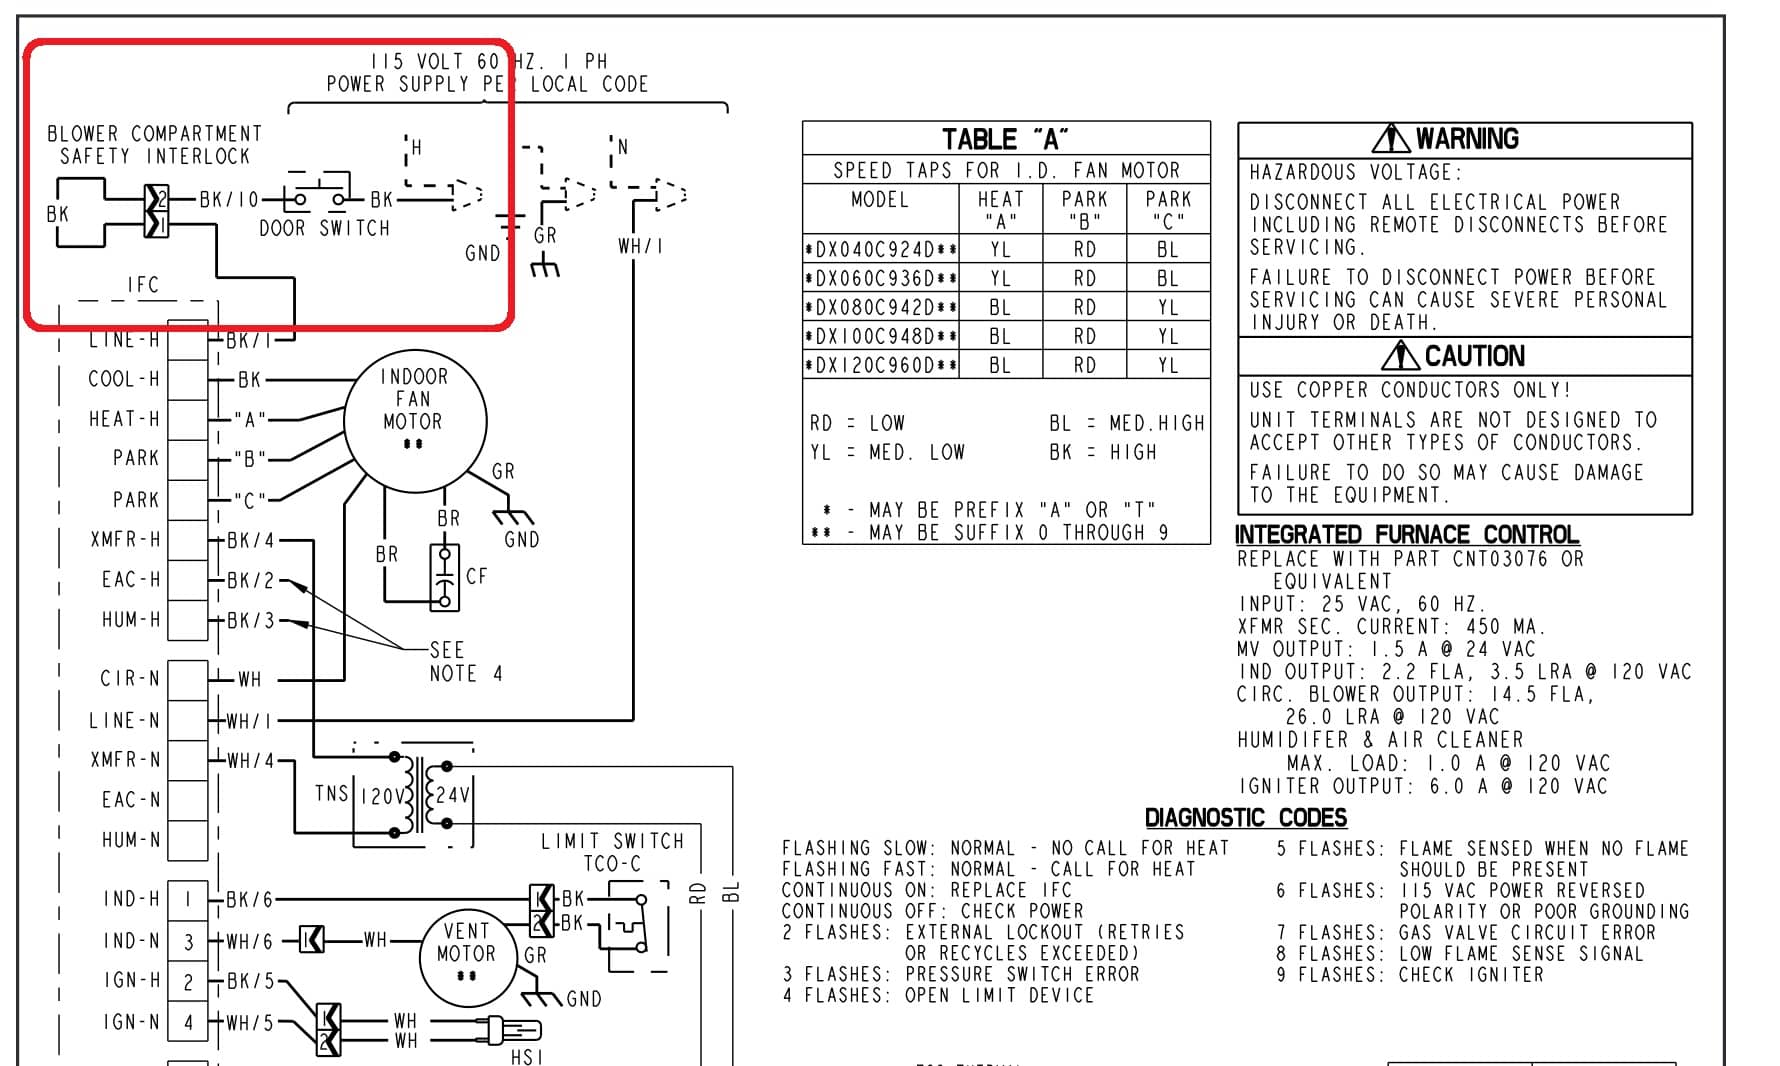 Trane_Furnace_Wiring_PARTIAL_023 carrier furnace wiring diagram carrier furnace wiring diagrams Test Kirby G4 Power Switch at virtualis.co